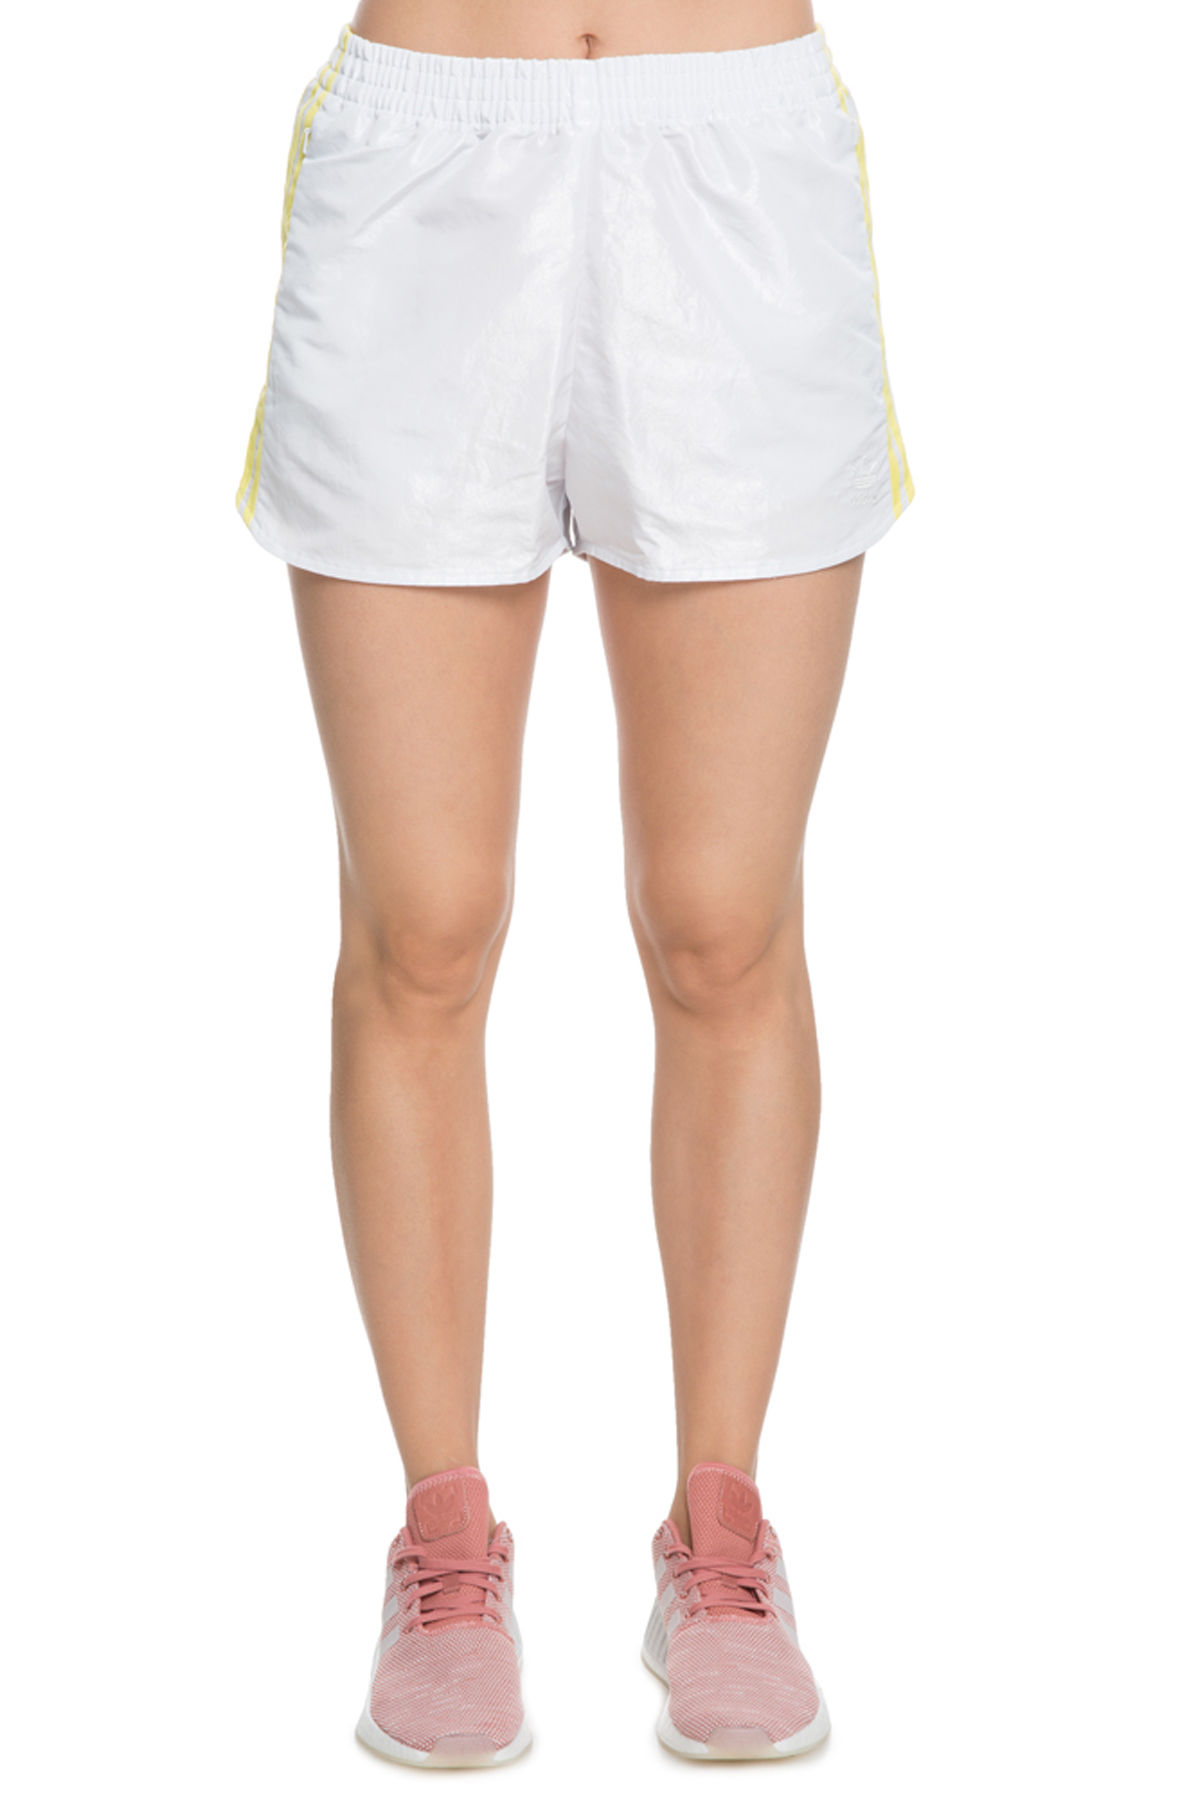 The Fsh L Short in Vintage White